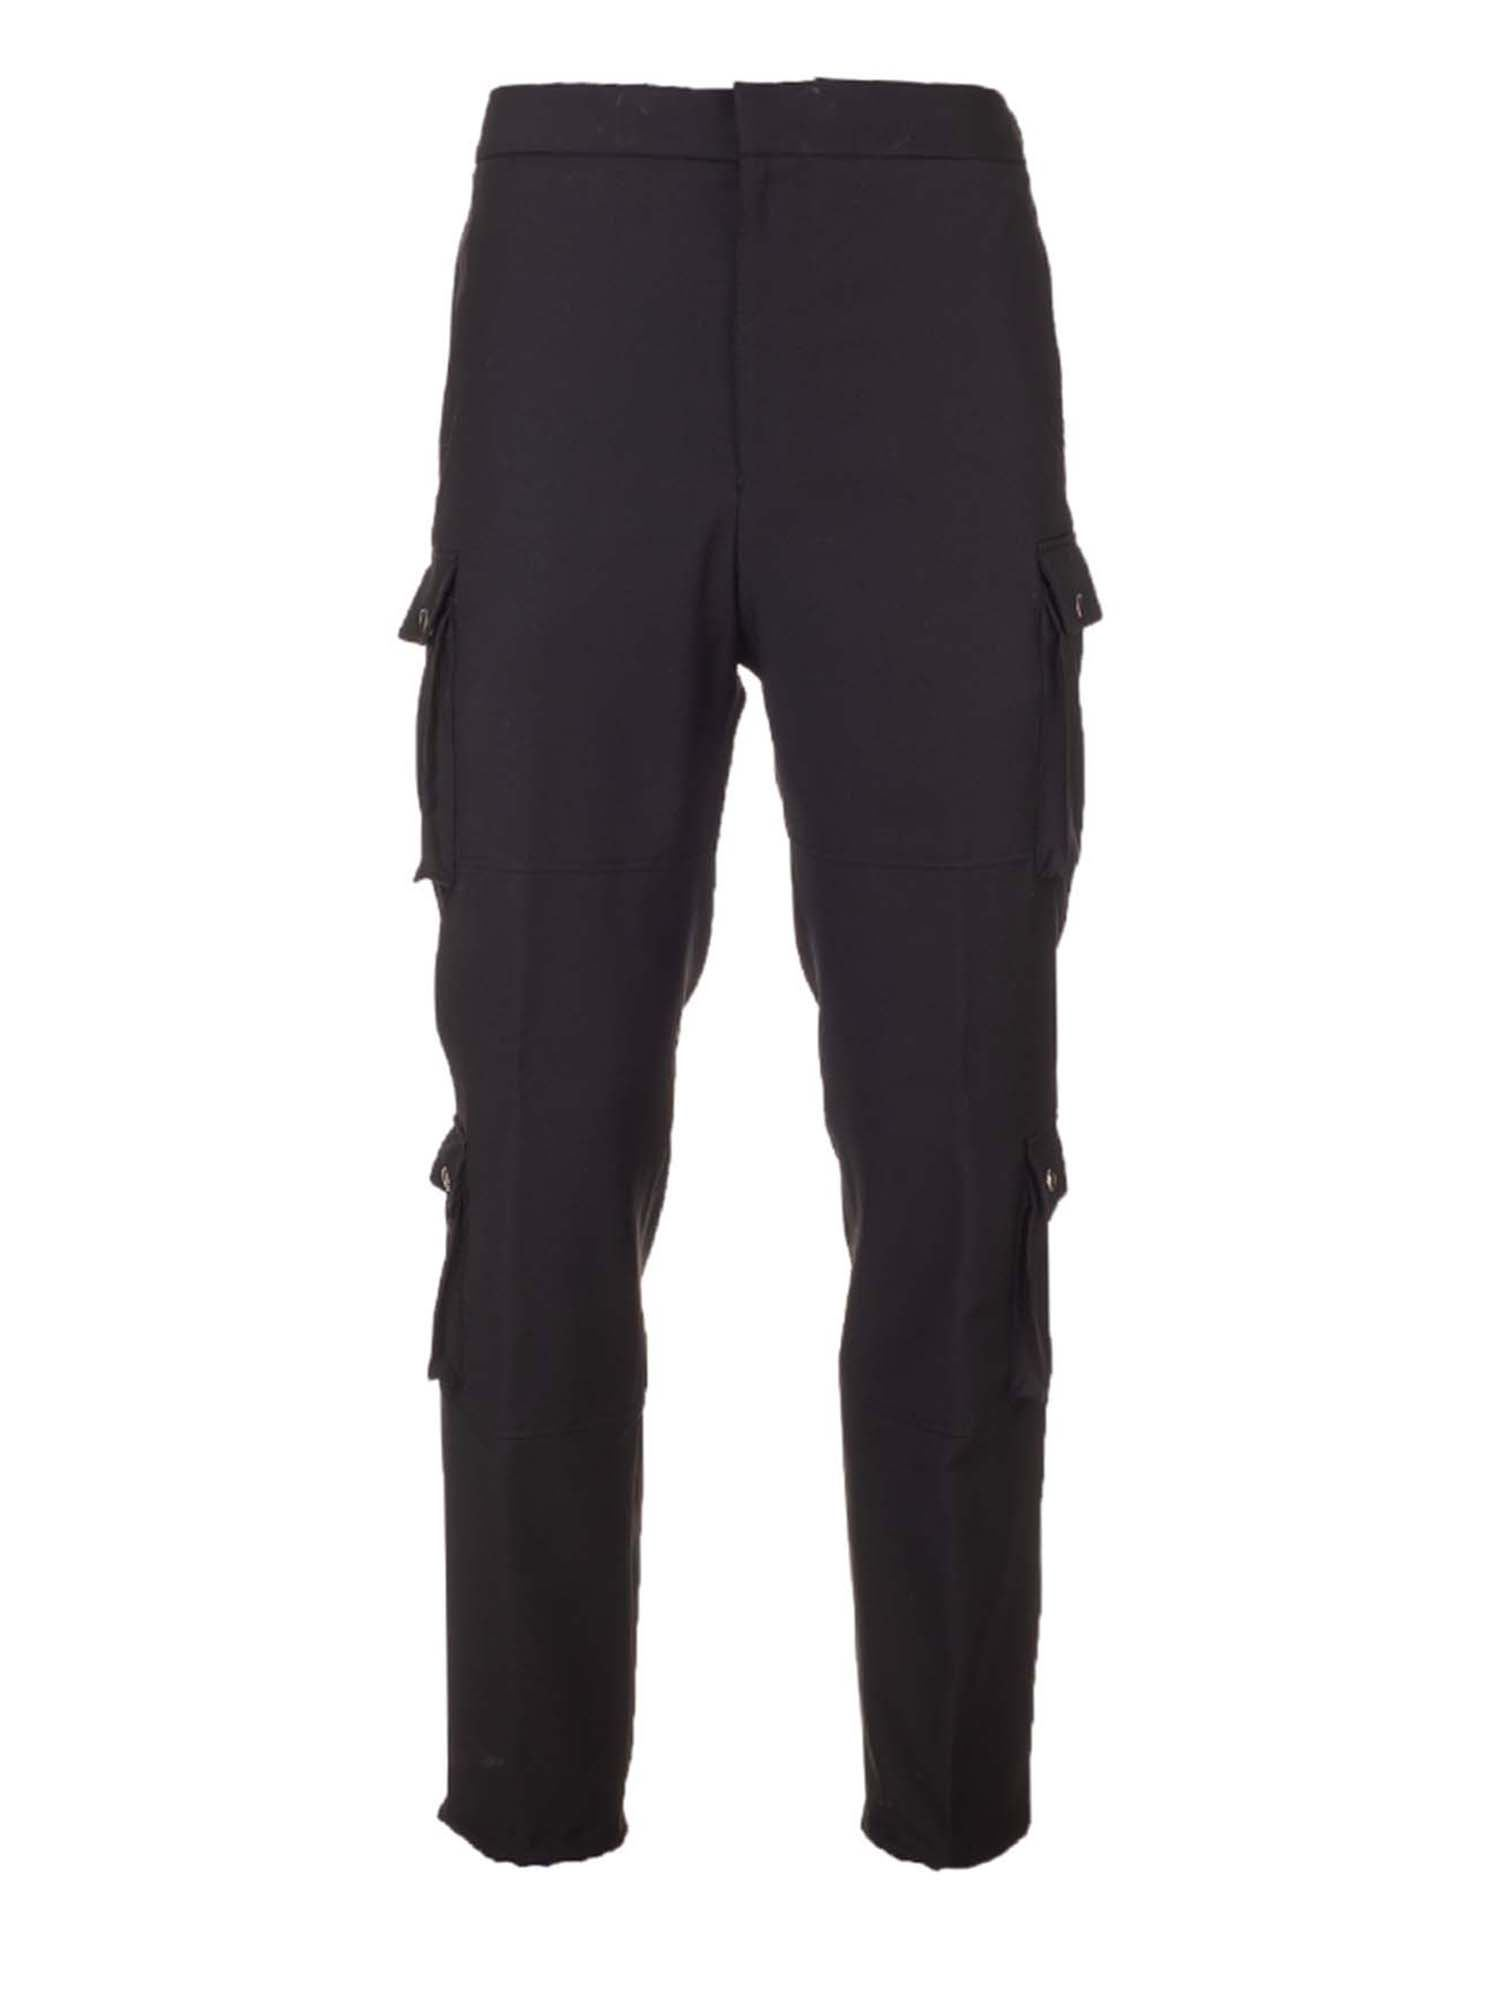 Givenchy CARGO PANTS IN BLACK